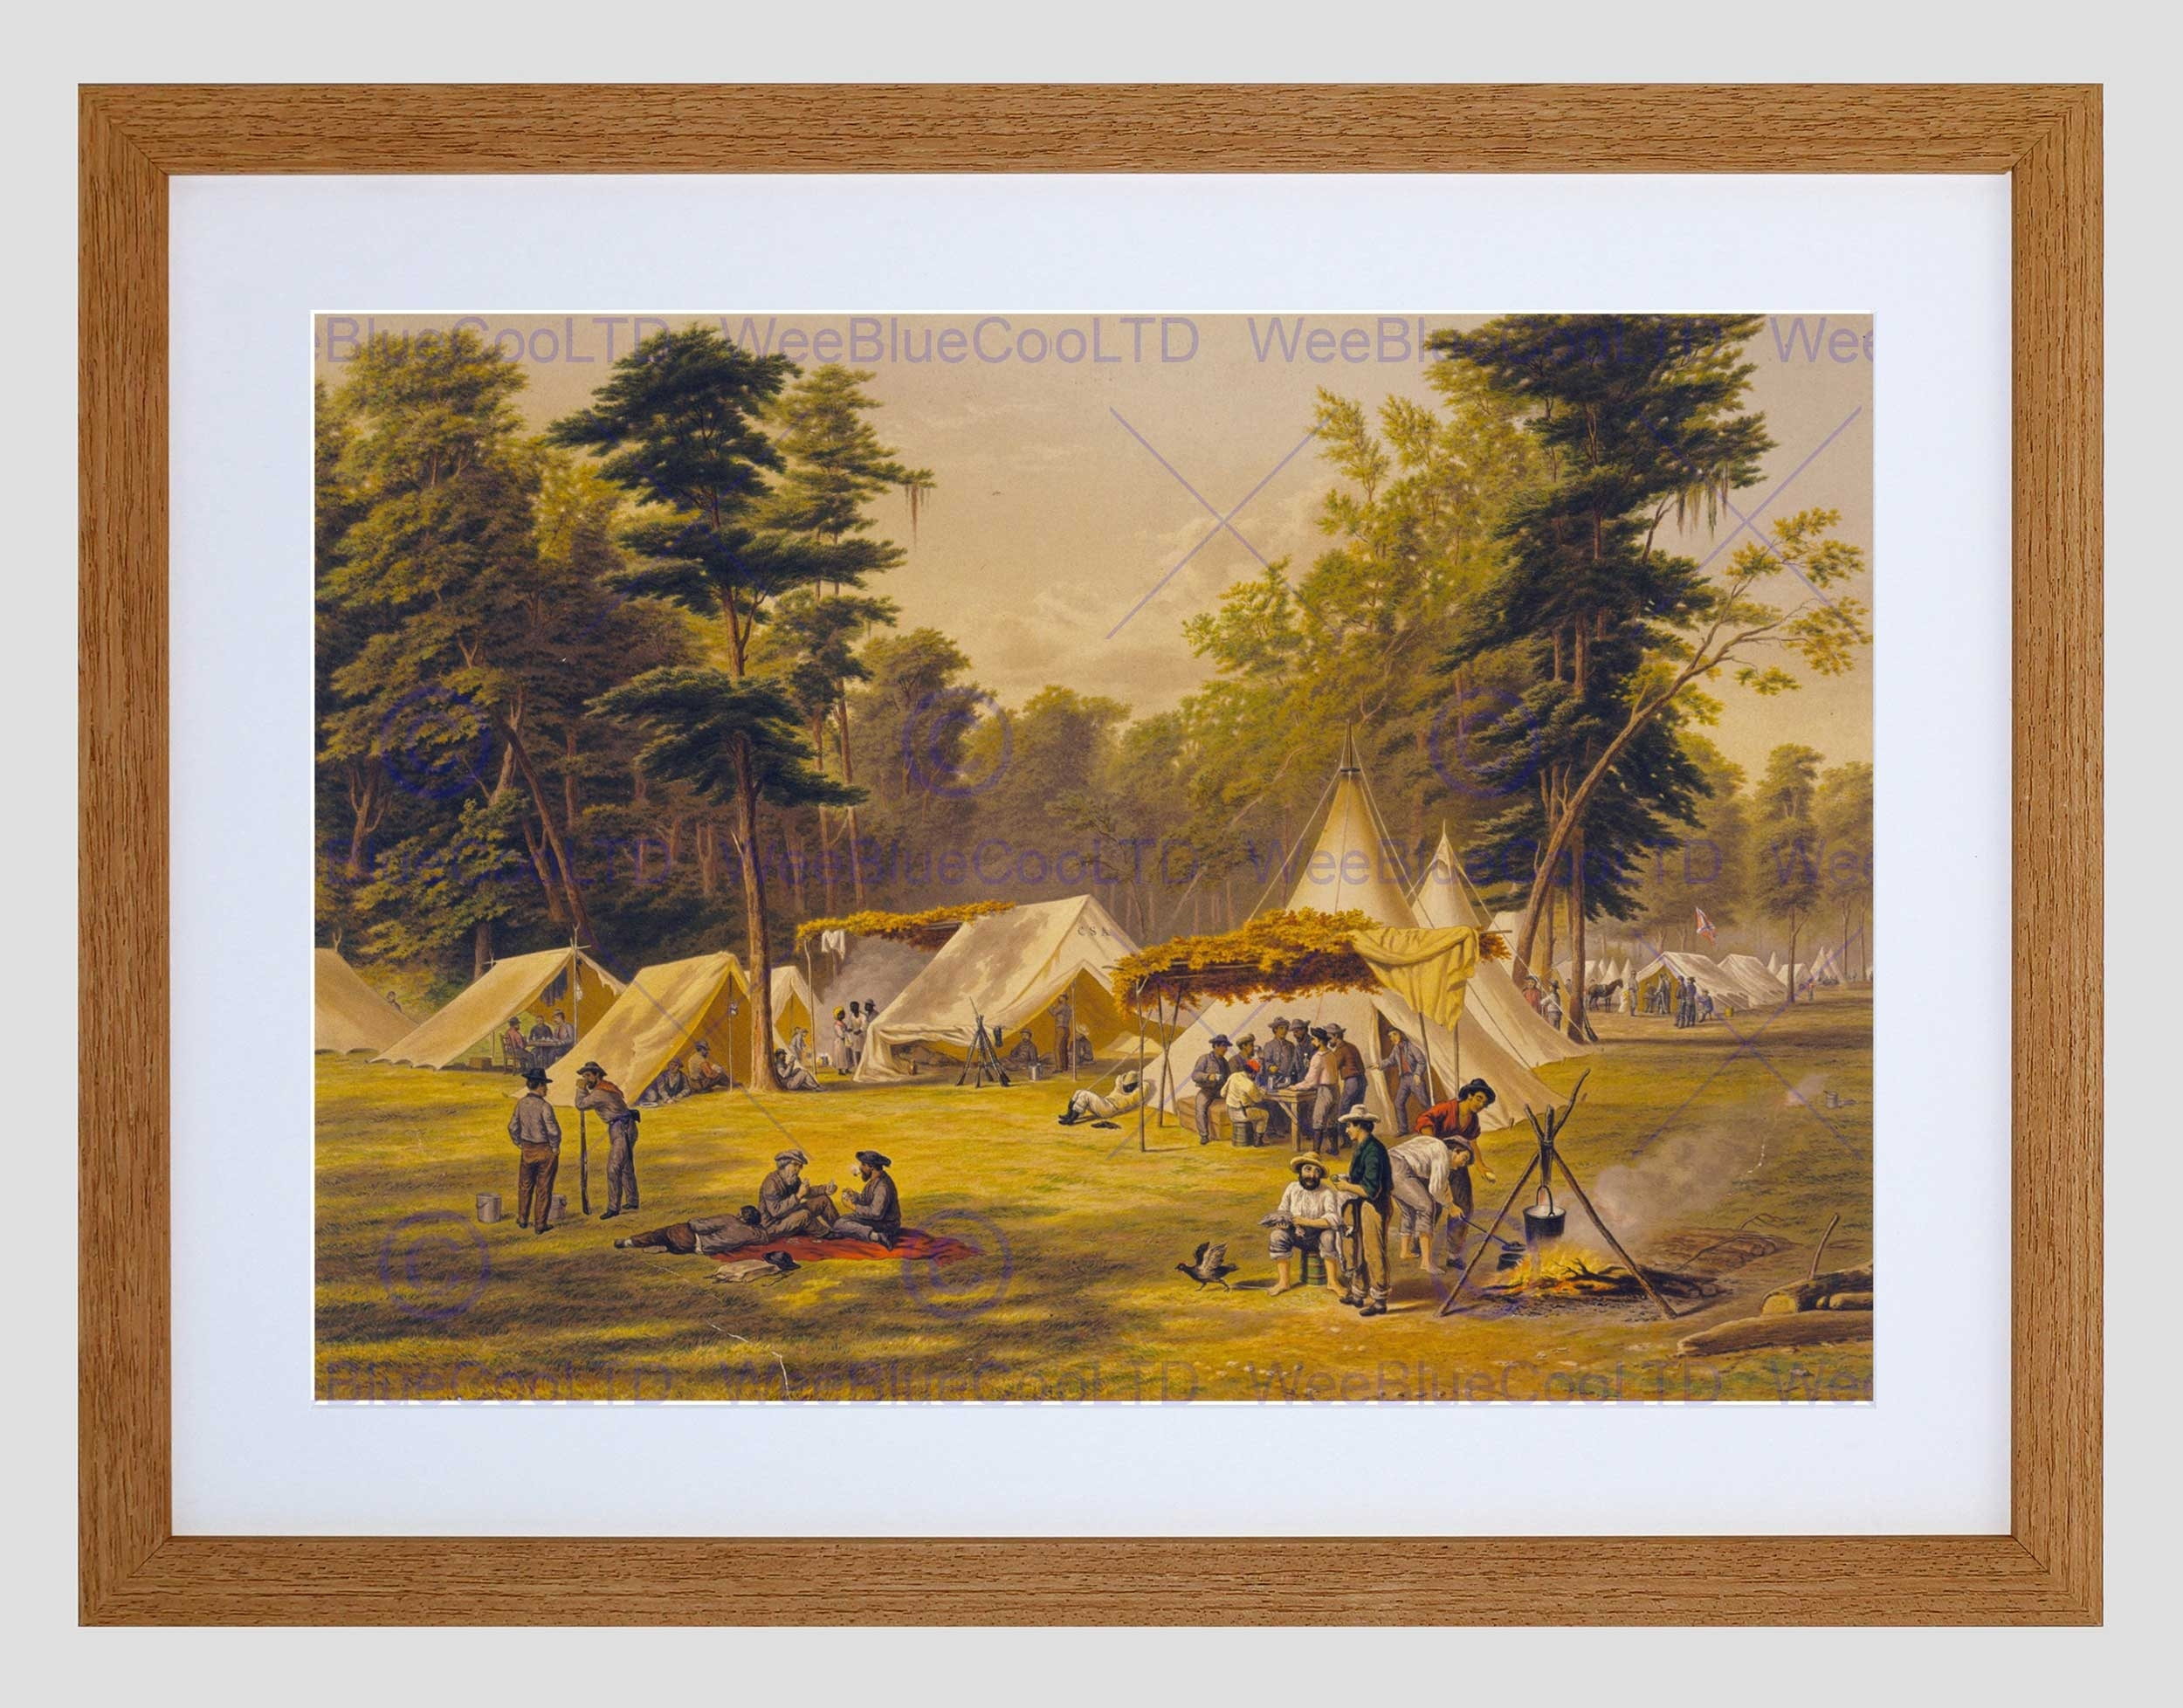 Paintings Confederate Army Camp American Civil War Framed Art Pertaining To Most Recent Confederate Framed Art Prints (View 8 of 15)